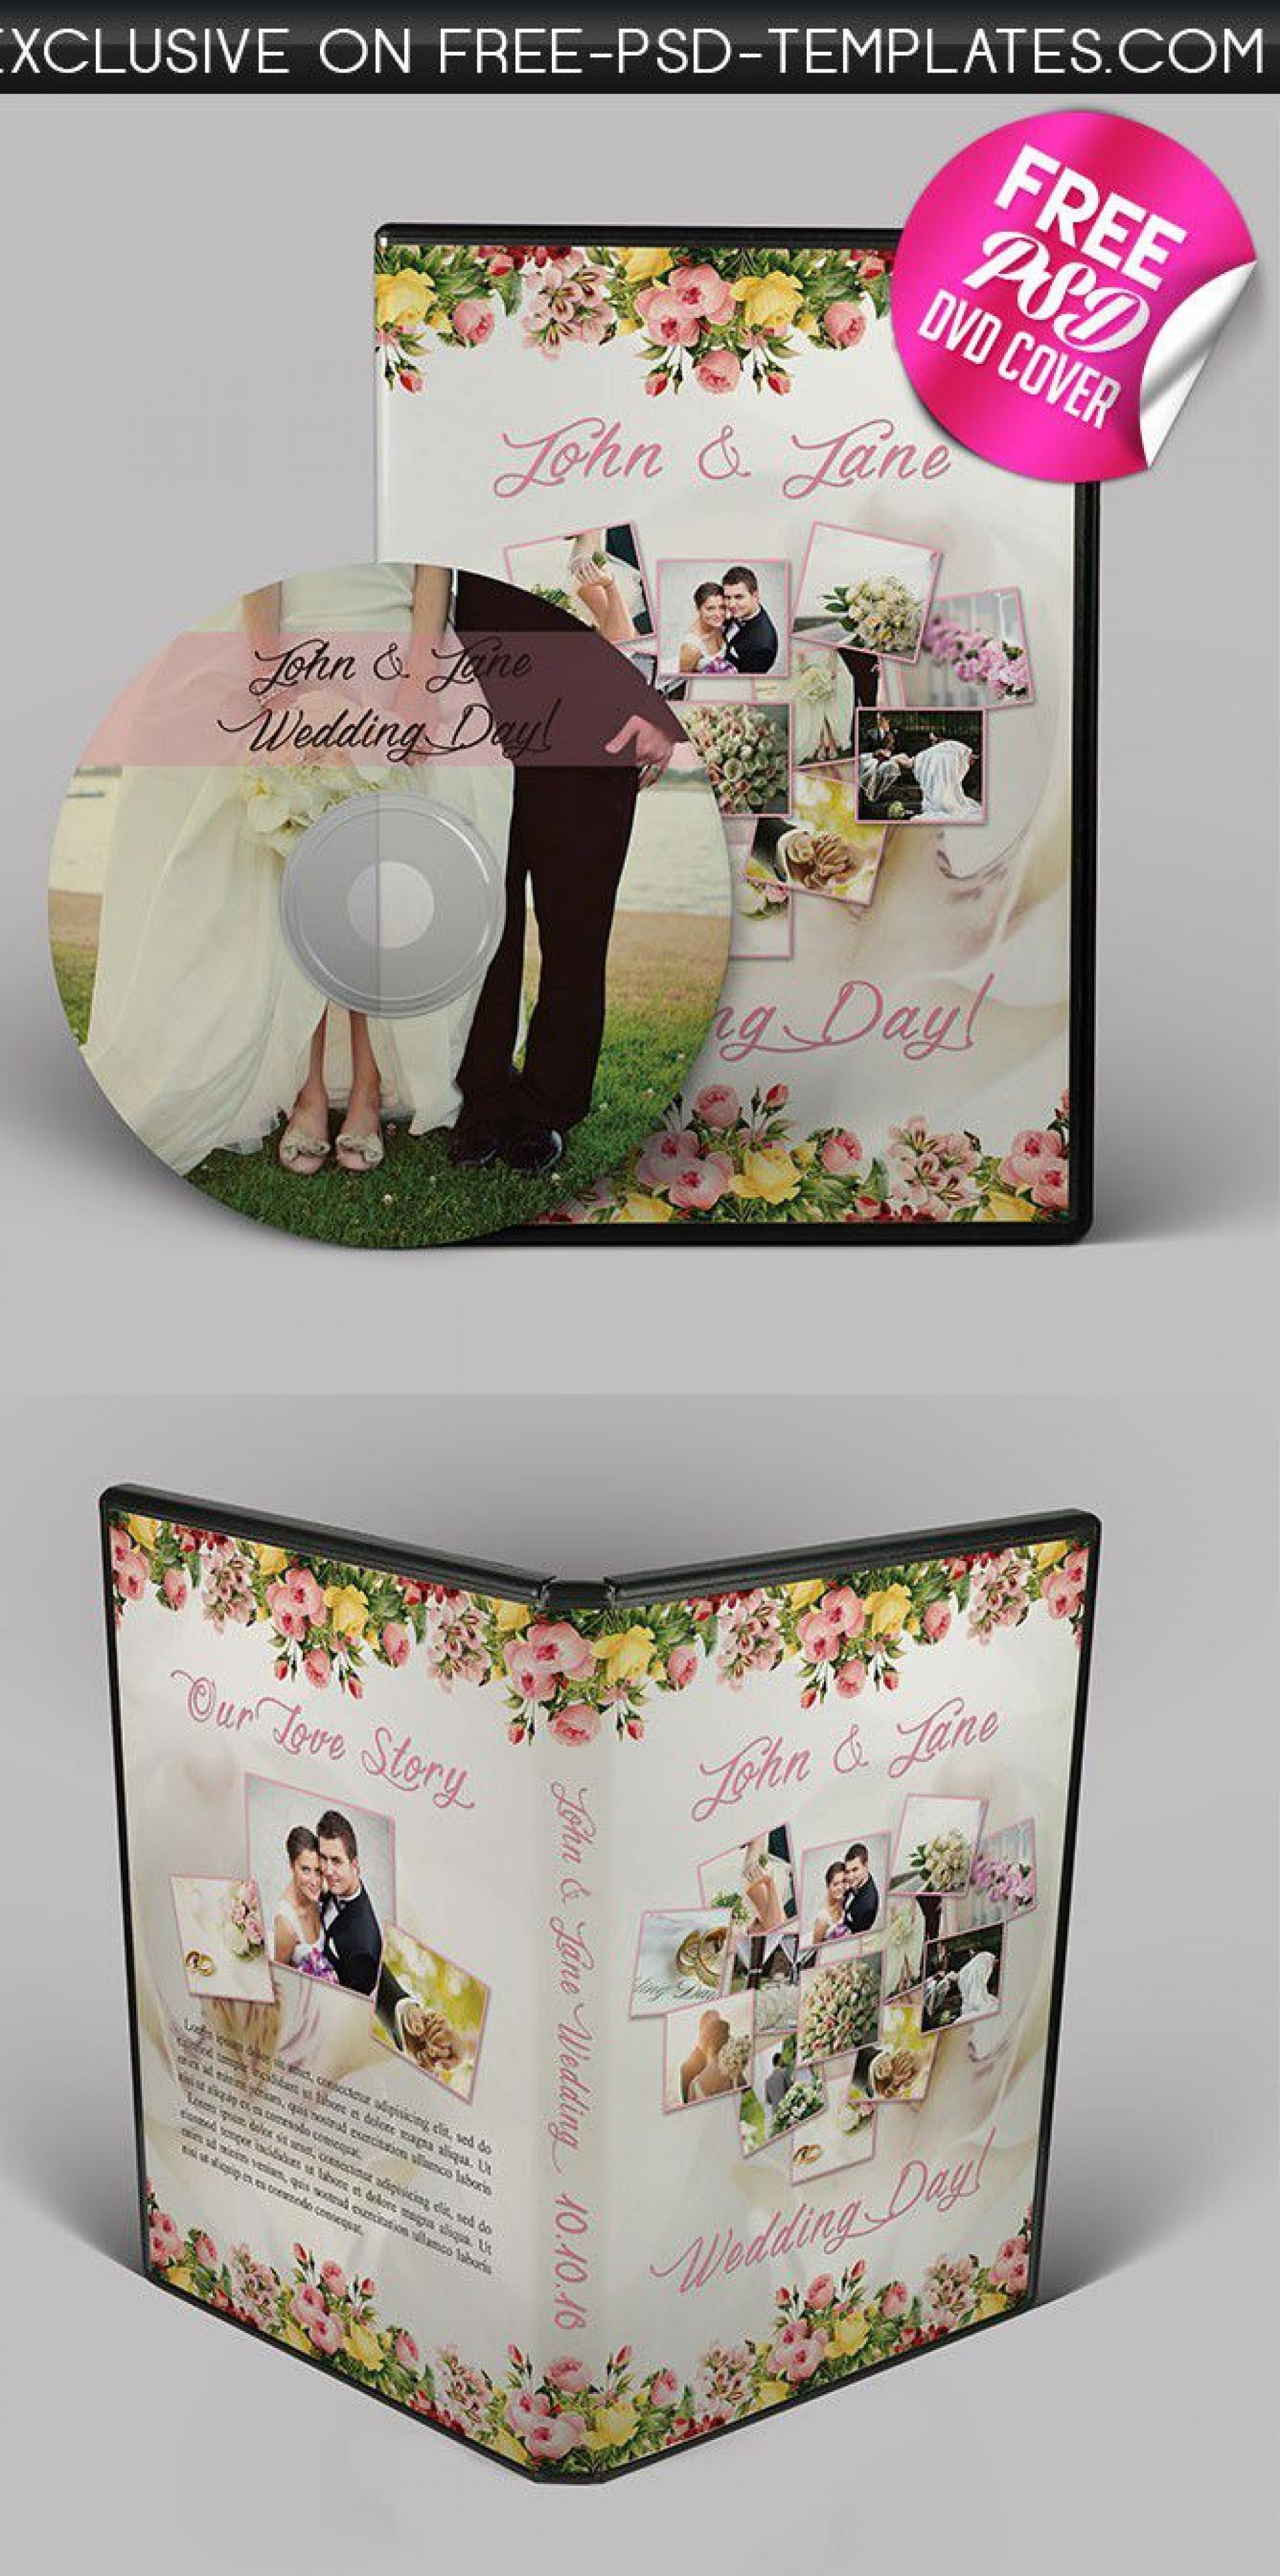 001 Dreaded Wedding Cd Cover Design Template Free Download High Definition 1920